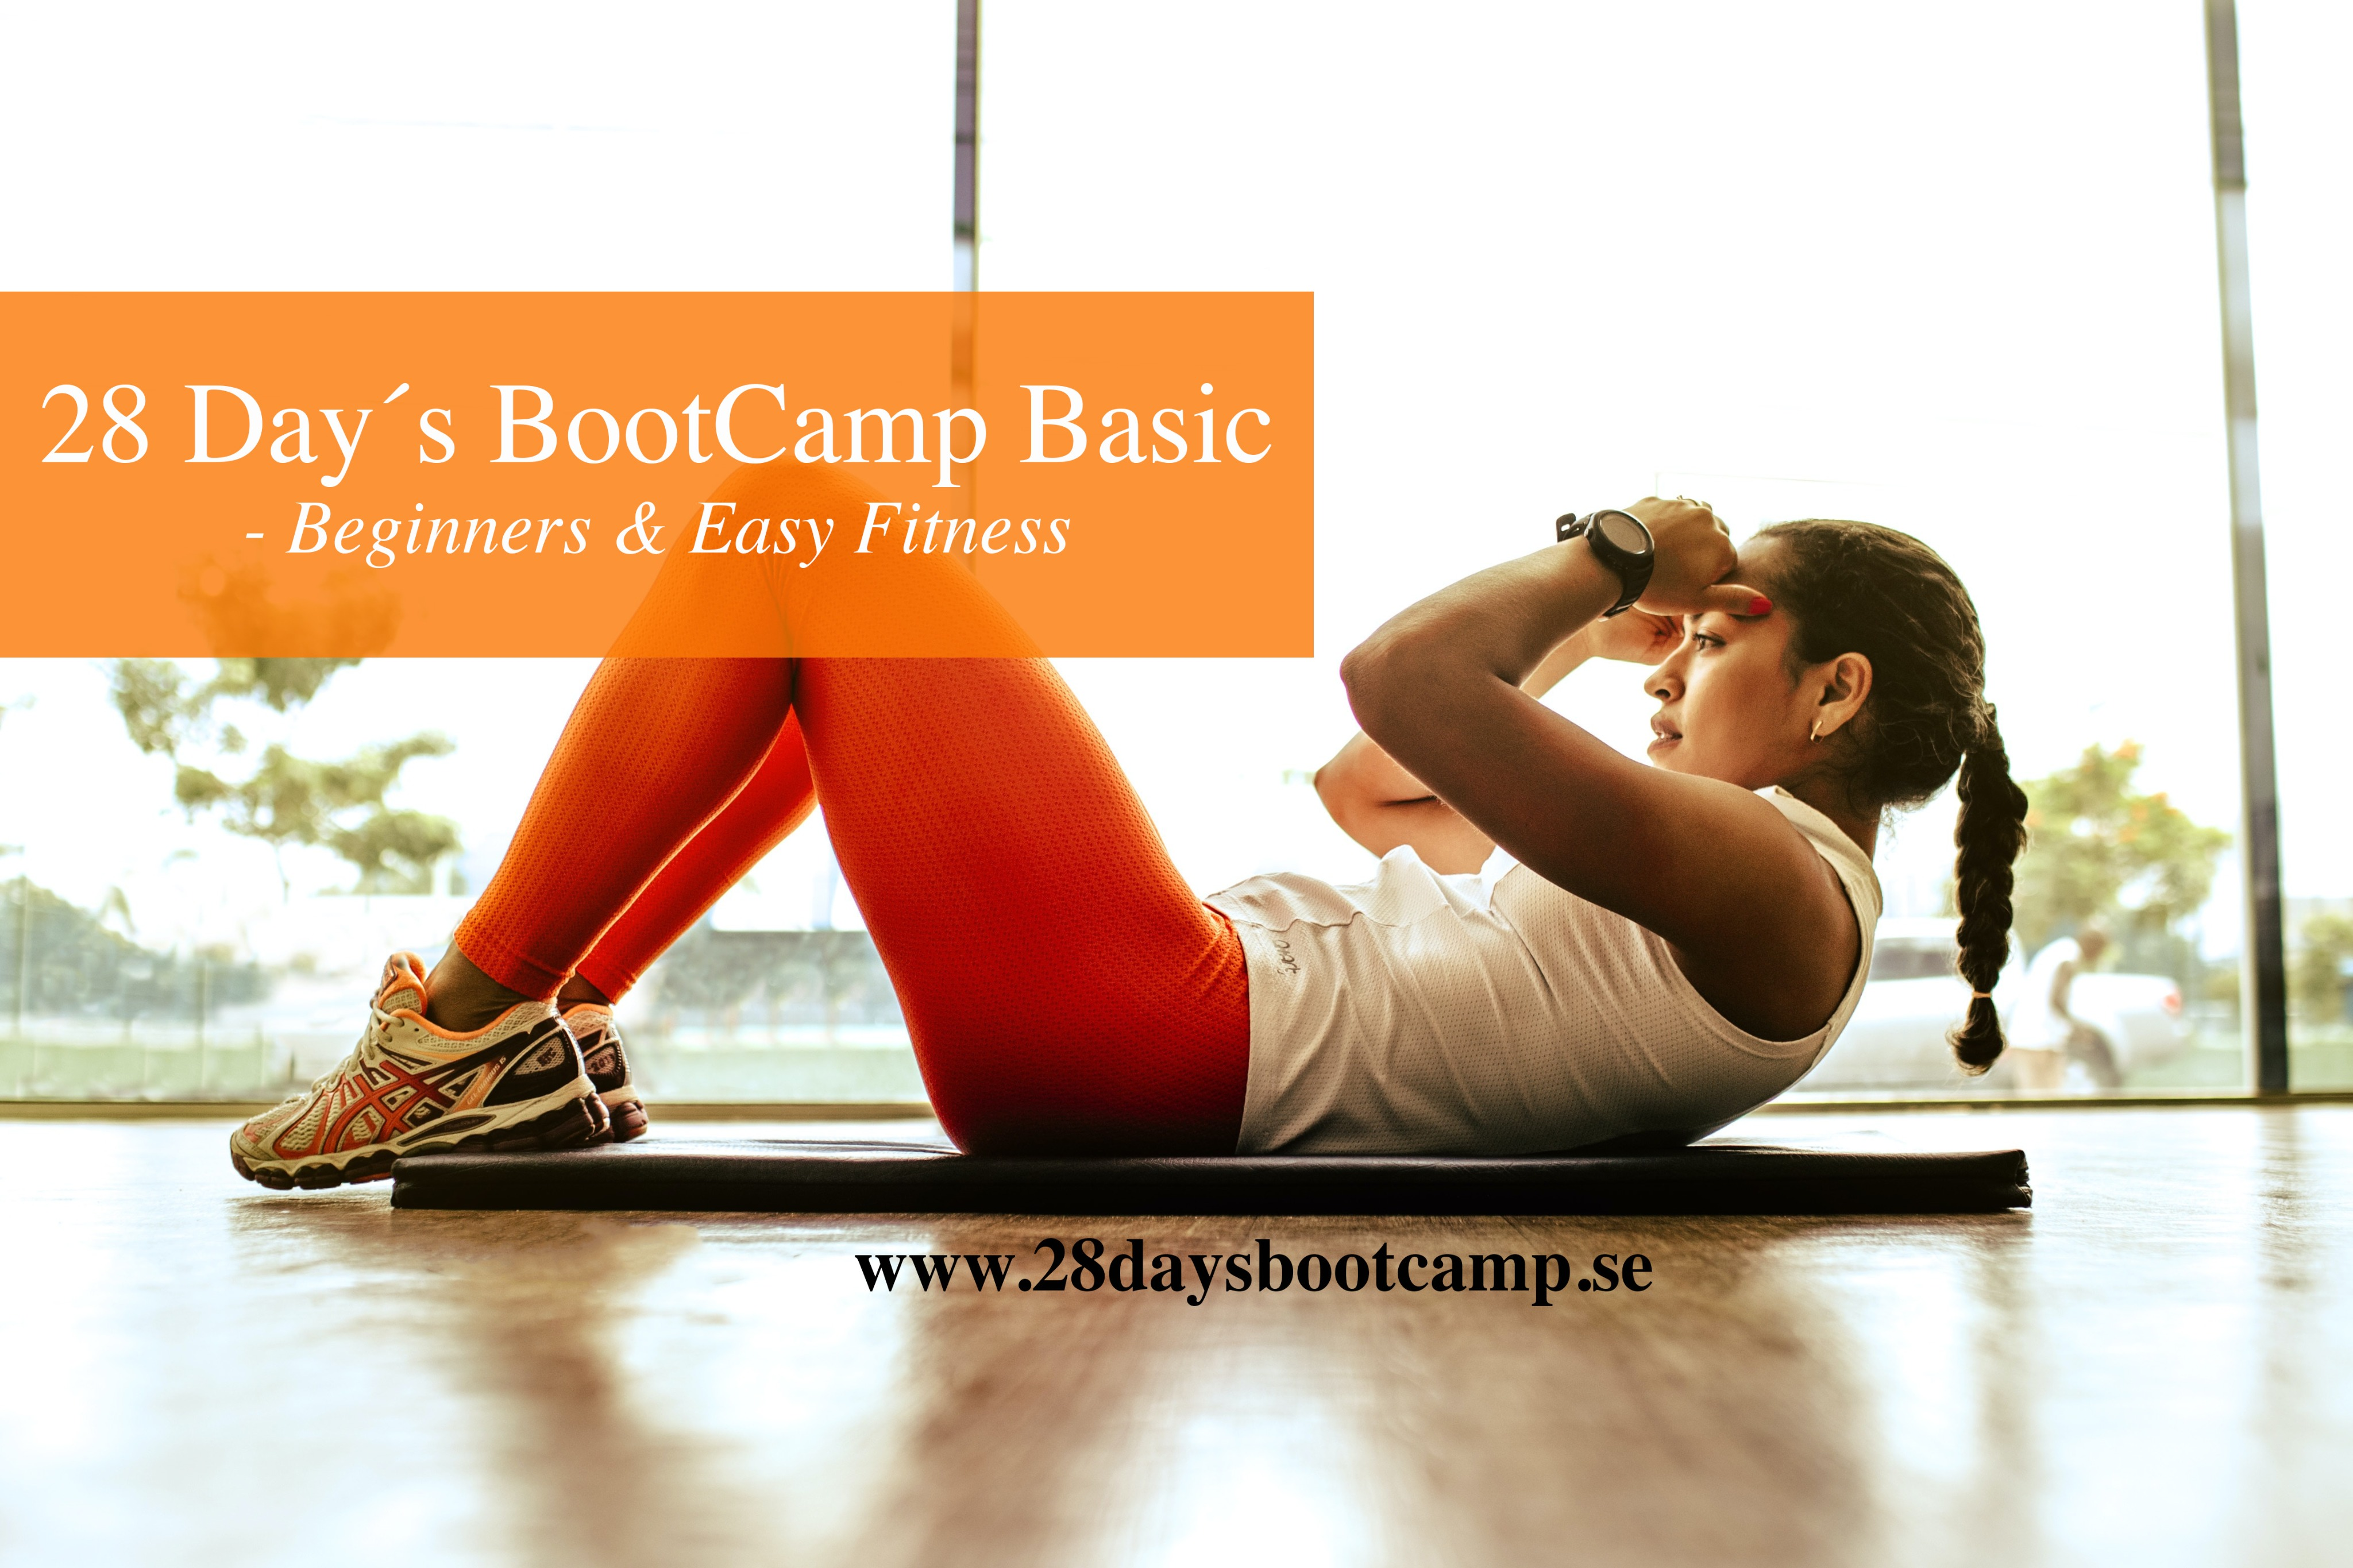 28 Day´s BootCamp Basic - Beginners & Easy Fitness!